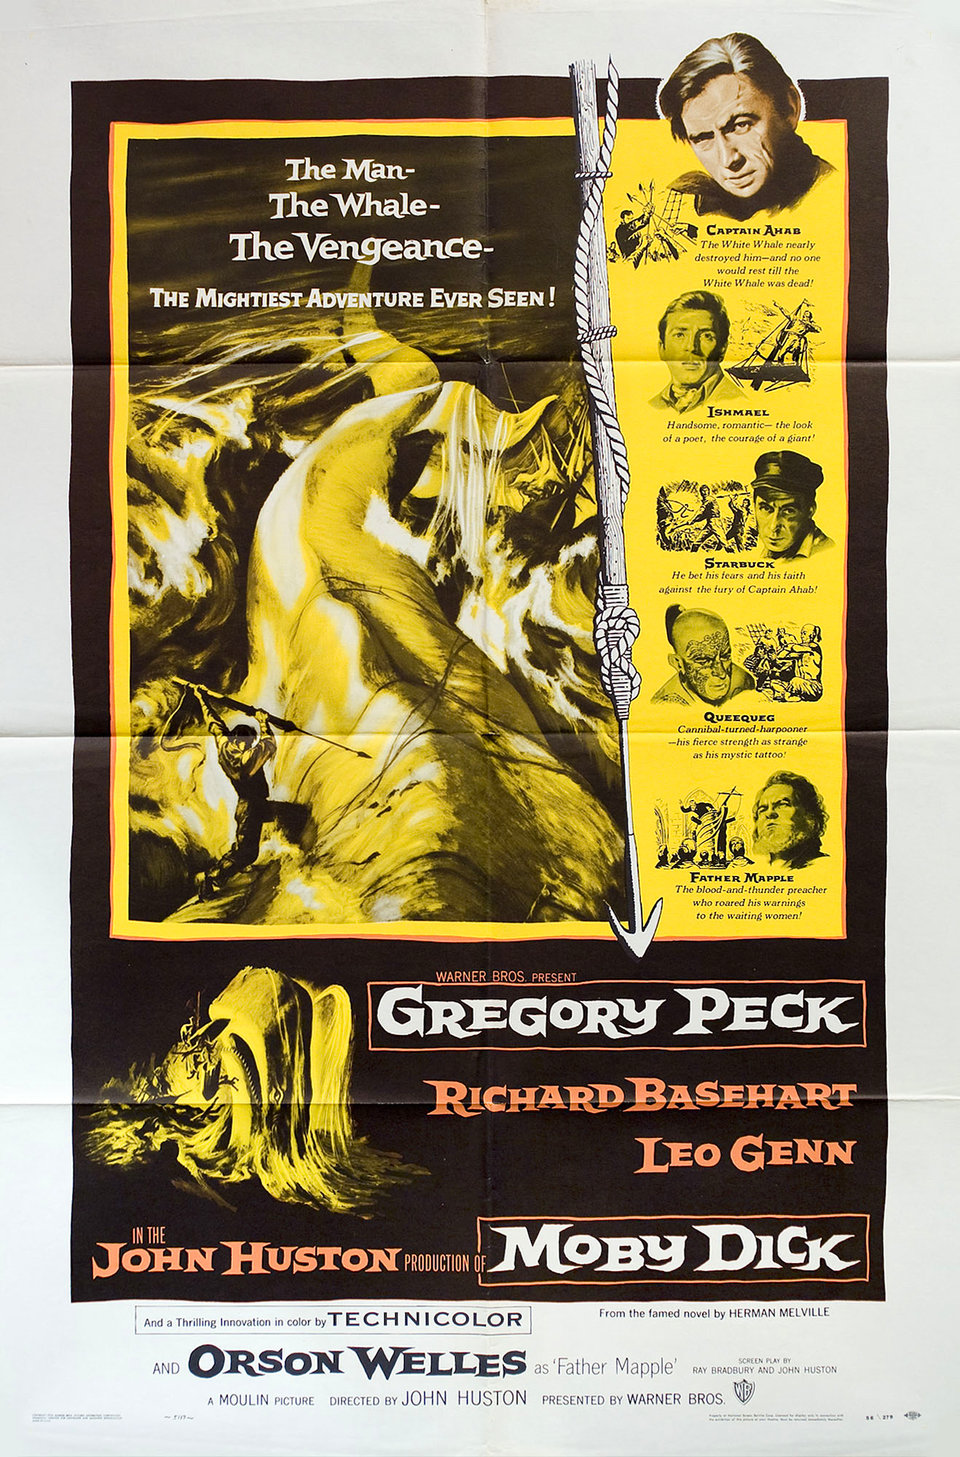 Moby Dick 1956 U.S. One Sheet Poster